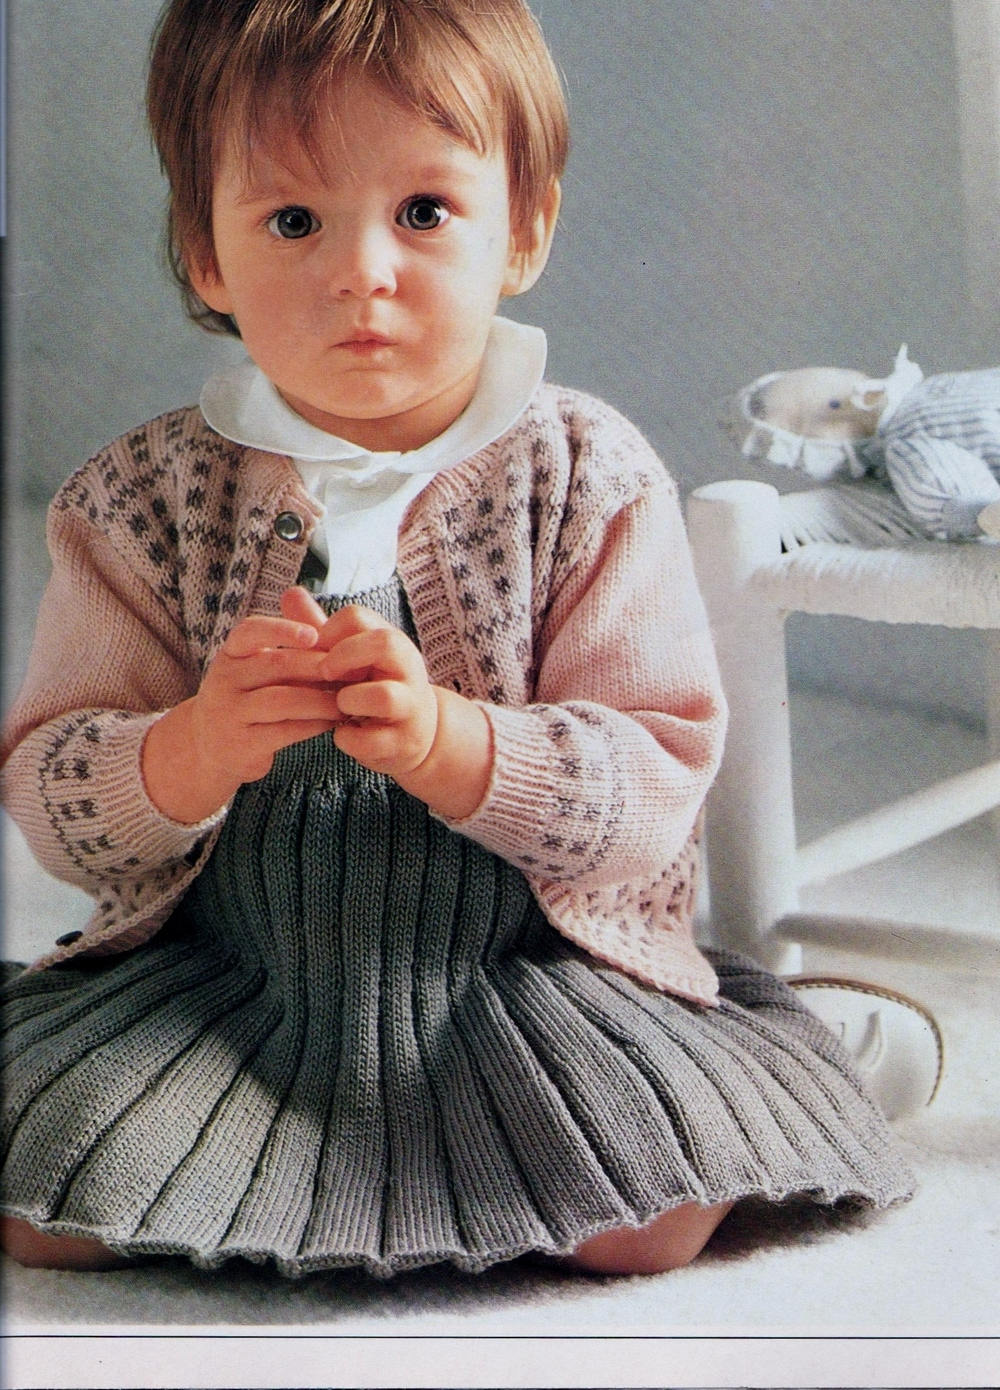 b00098276 INSTANT PDF Digital Download Vintage Row by Row Knitting Pattern to ...